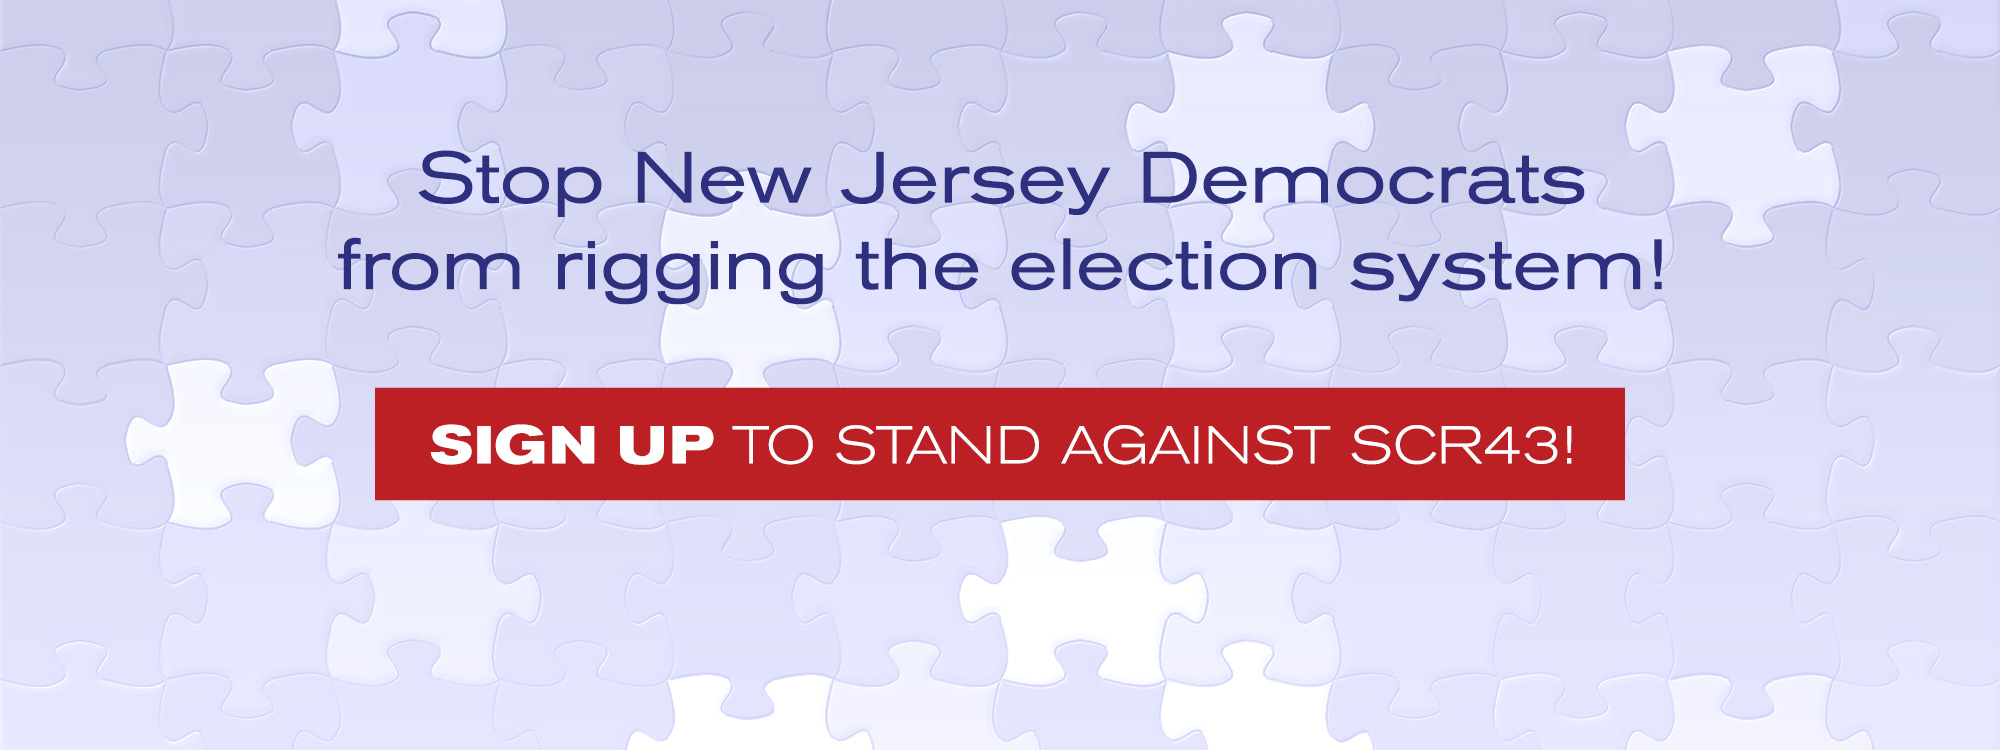 Stop New Jersey Democrats from rigging the election system!